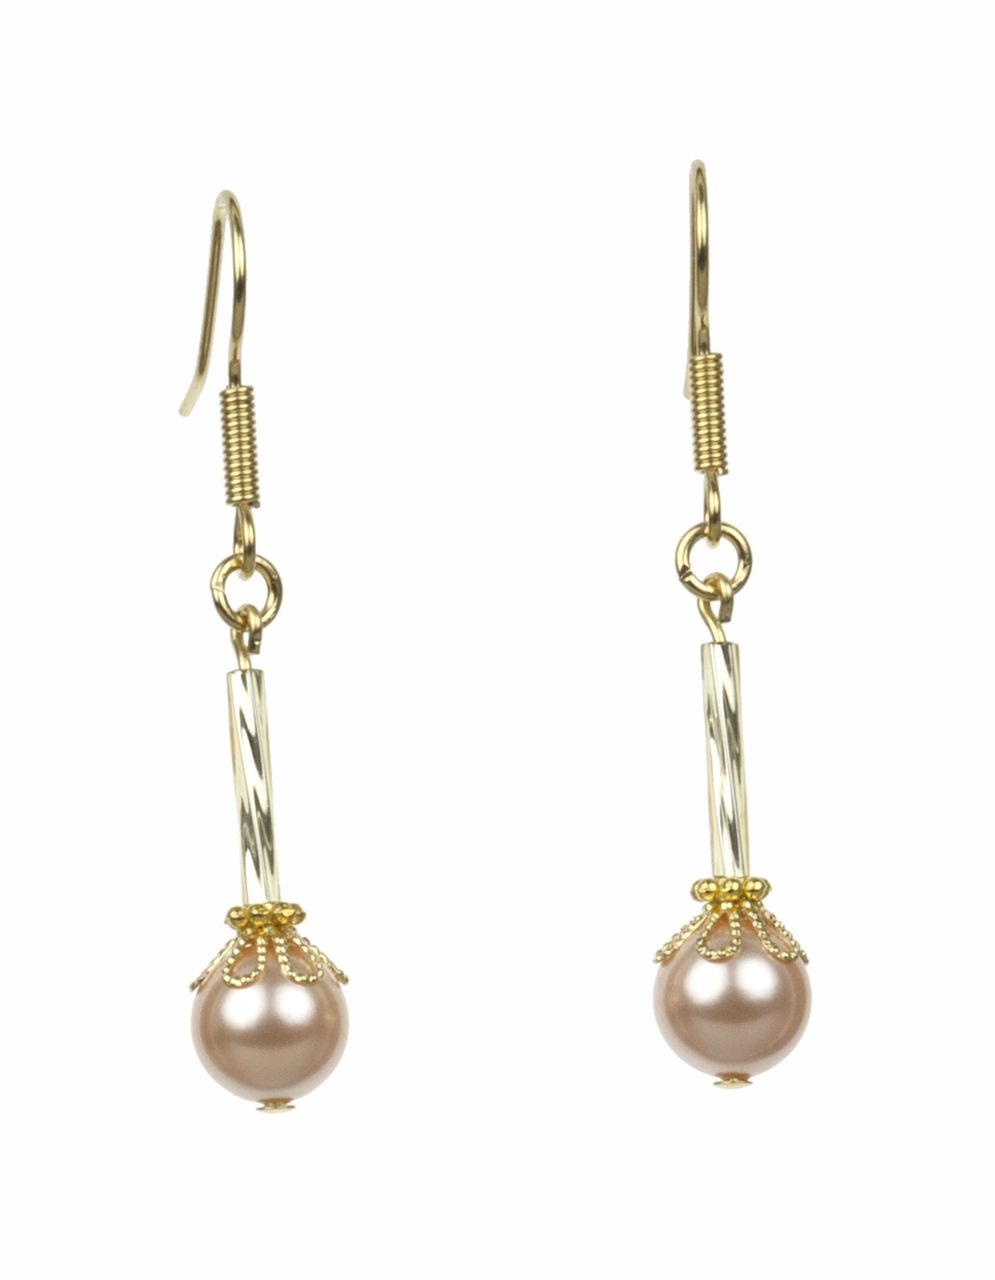 The Peach Pearls and Twisted Gold Earrings are from the Everyday Essentials Collection by Lee Buchanan Jewelry. Lovely, soft Swarovski Peach Pearls are paired with Twisted Gold Bugle Beads, Gold Rondelles and Gold Flower Bead caps. These earrings sparkle! You'll want to add our Peach Pearls and Twisted Gold Earrings to your jewelry collection today or give as a gift. All Lee Buchanan Jewelry comes in a white gift box with a gold bow.